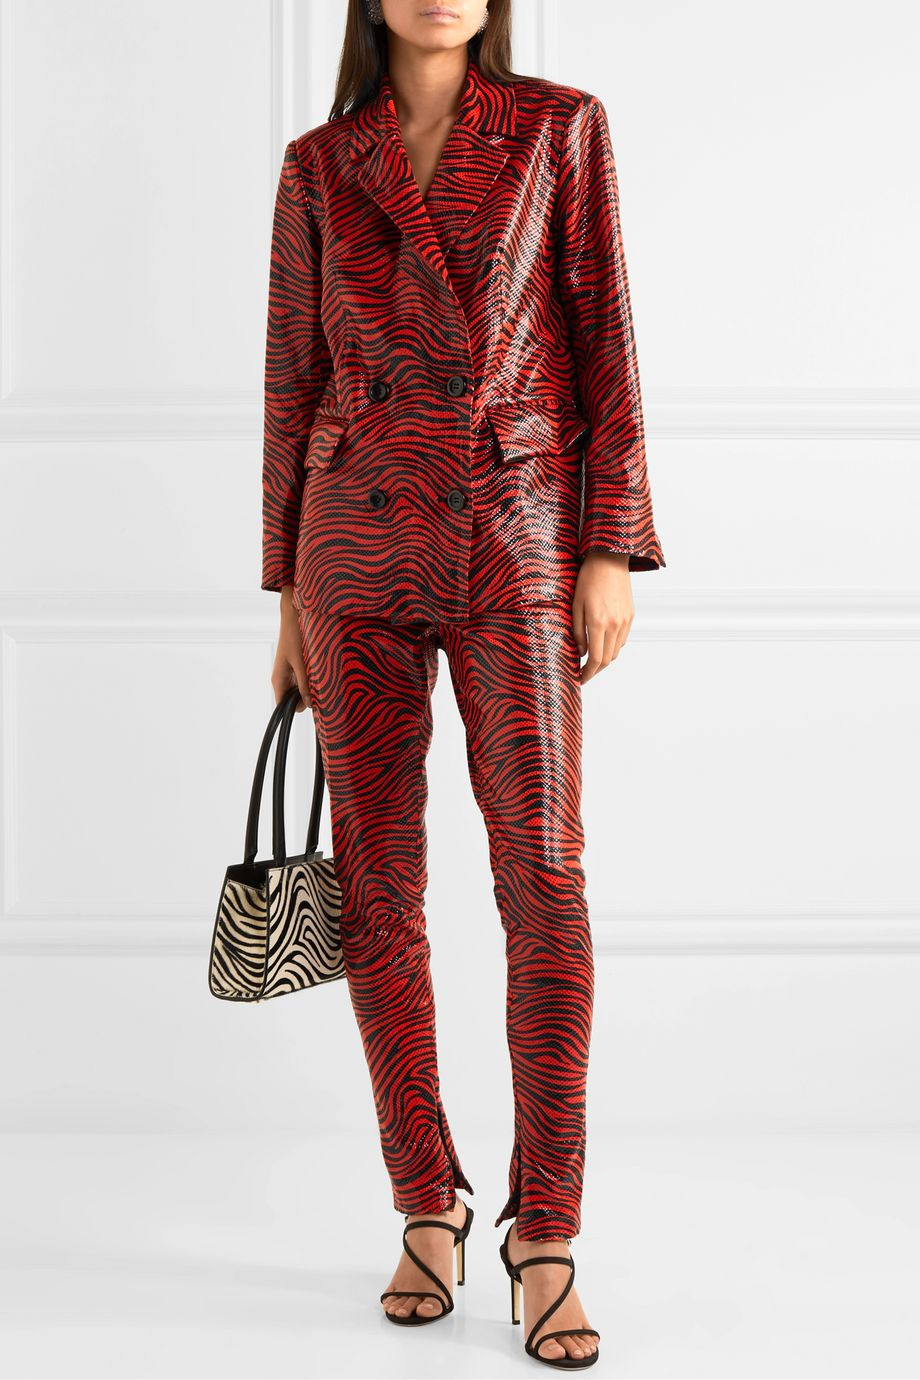 Stand Studio + Pernille Teisbaek Cassidy double-breasted zebra-print faux leather blazer